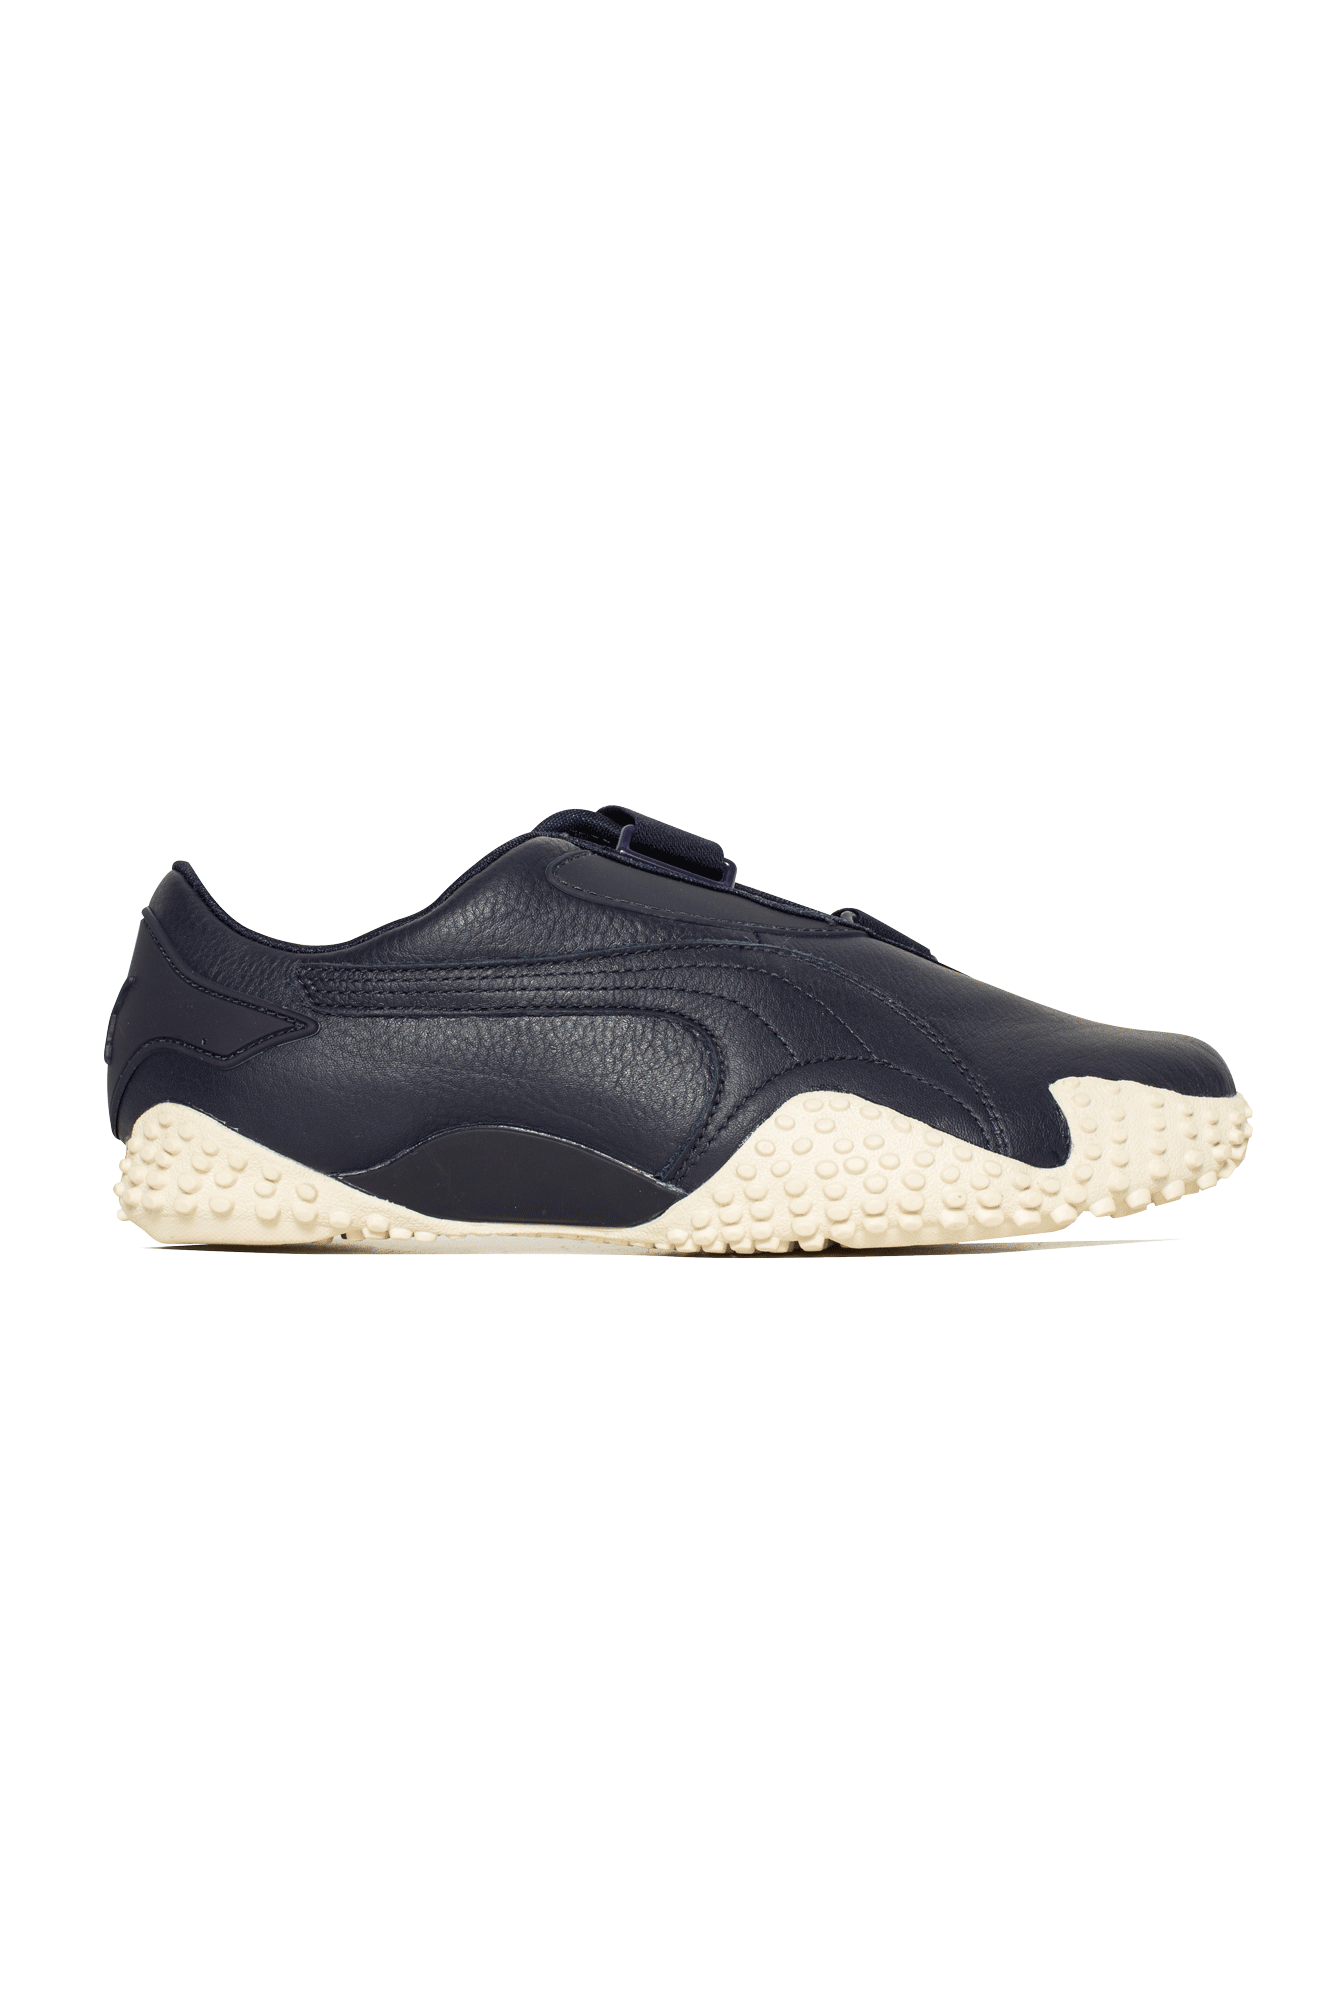 Puma pagina 4 One Block Down